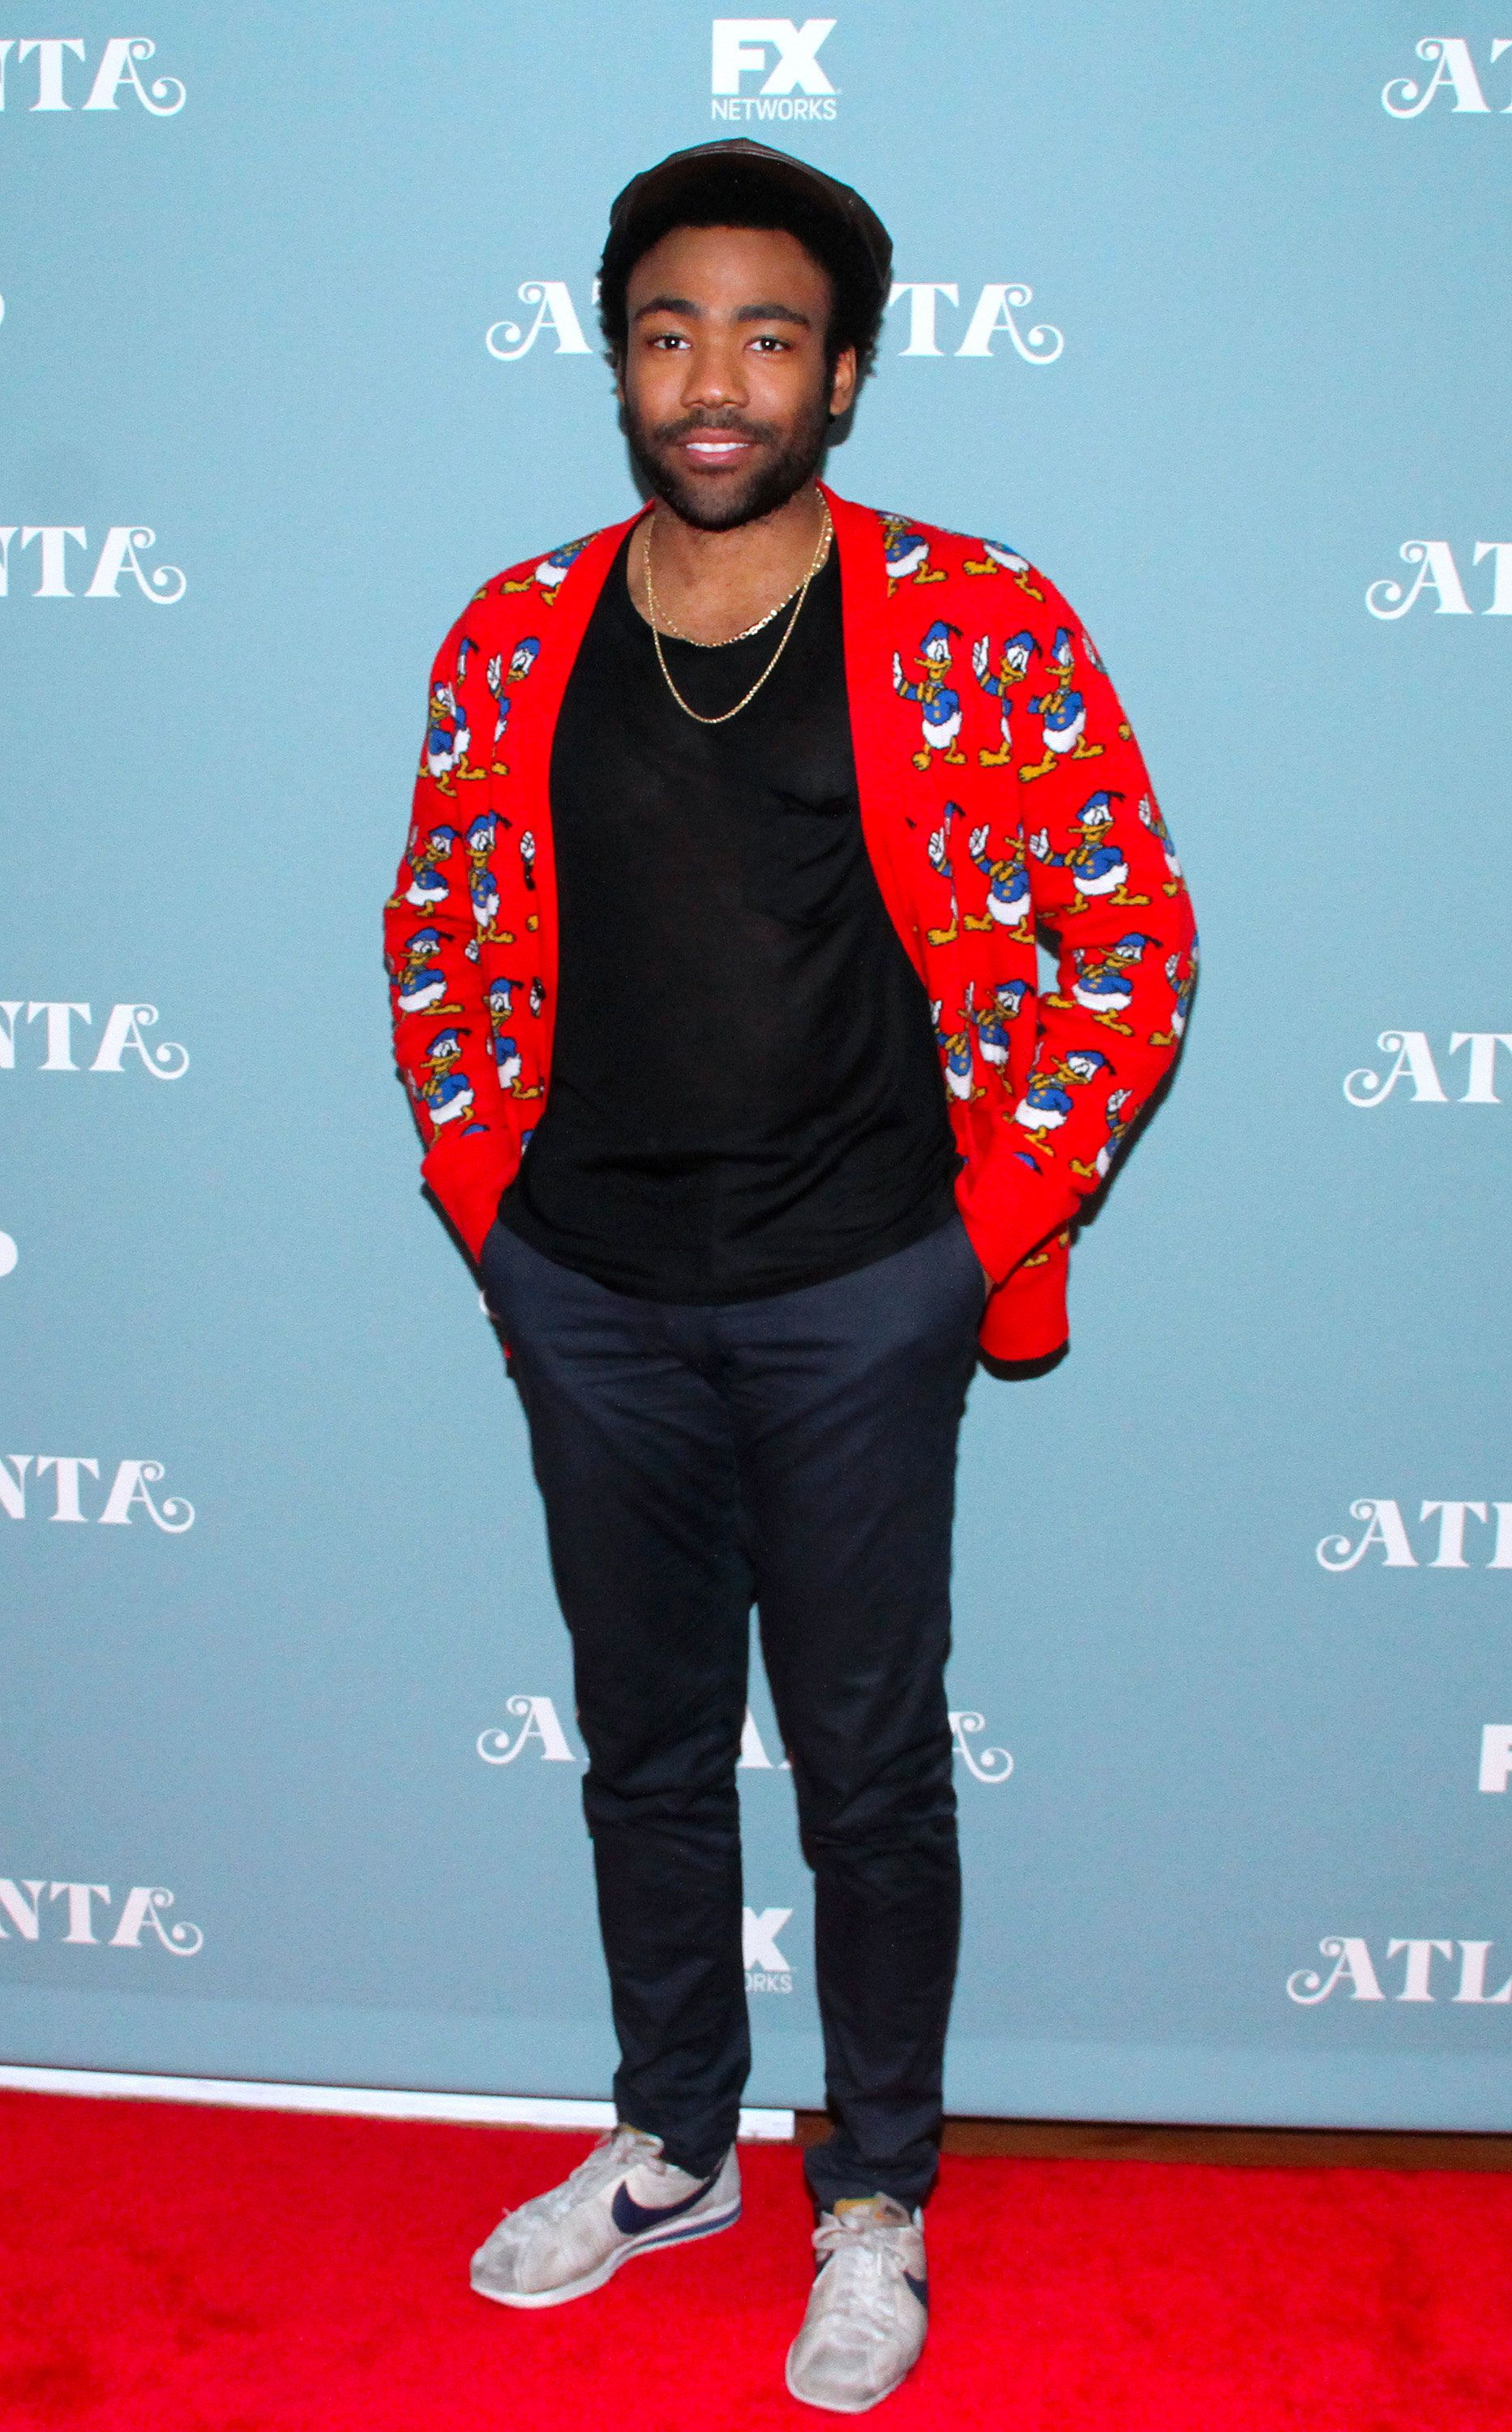 Donald Glover Style - Donald Glover Best Fashion Outfits